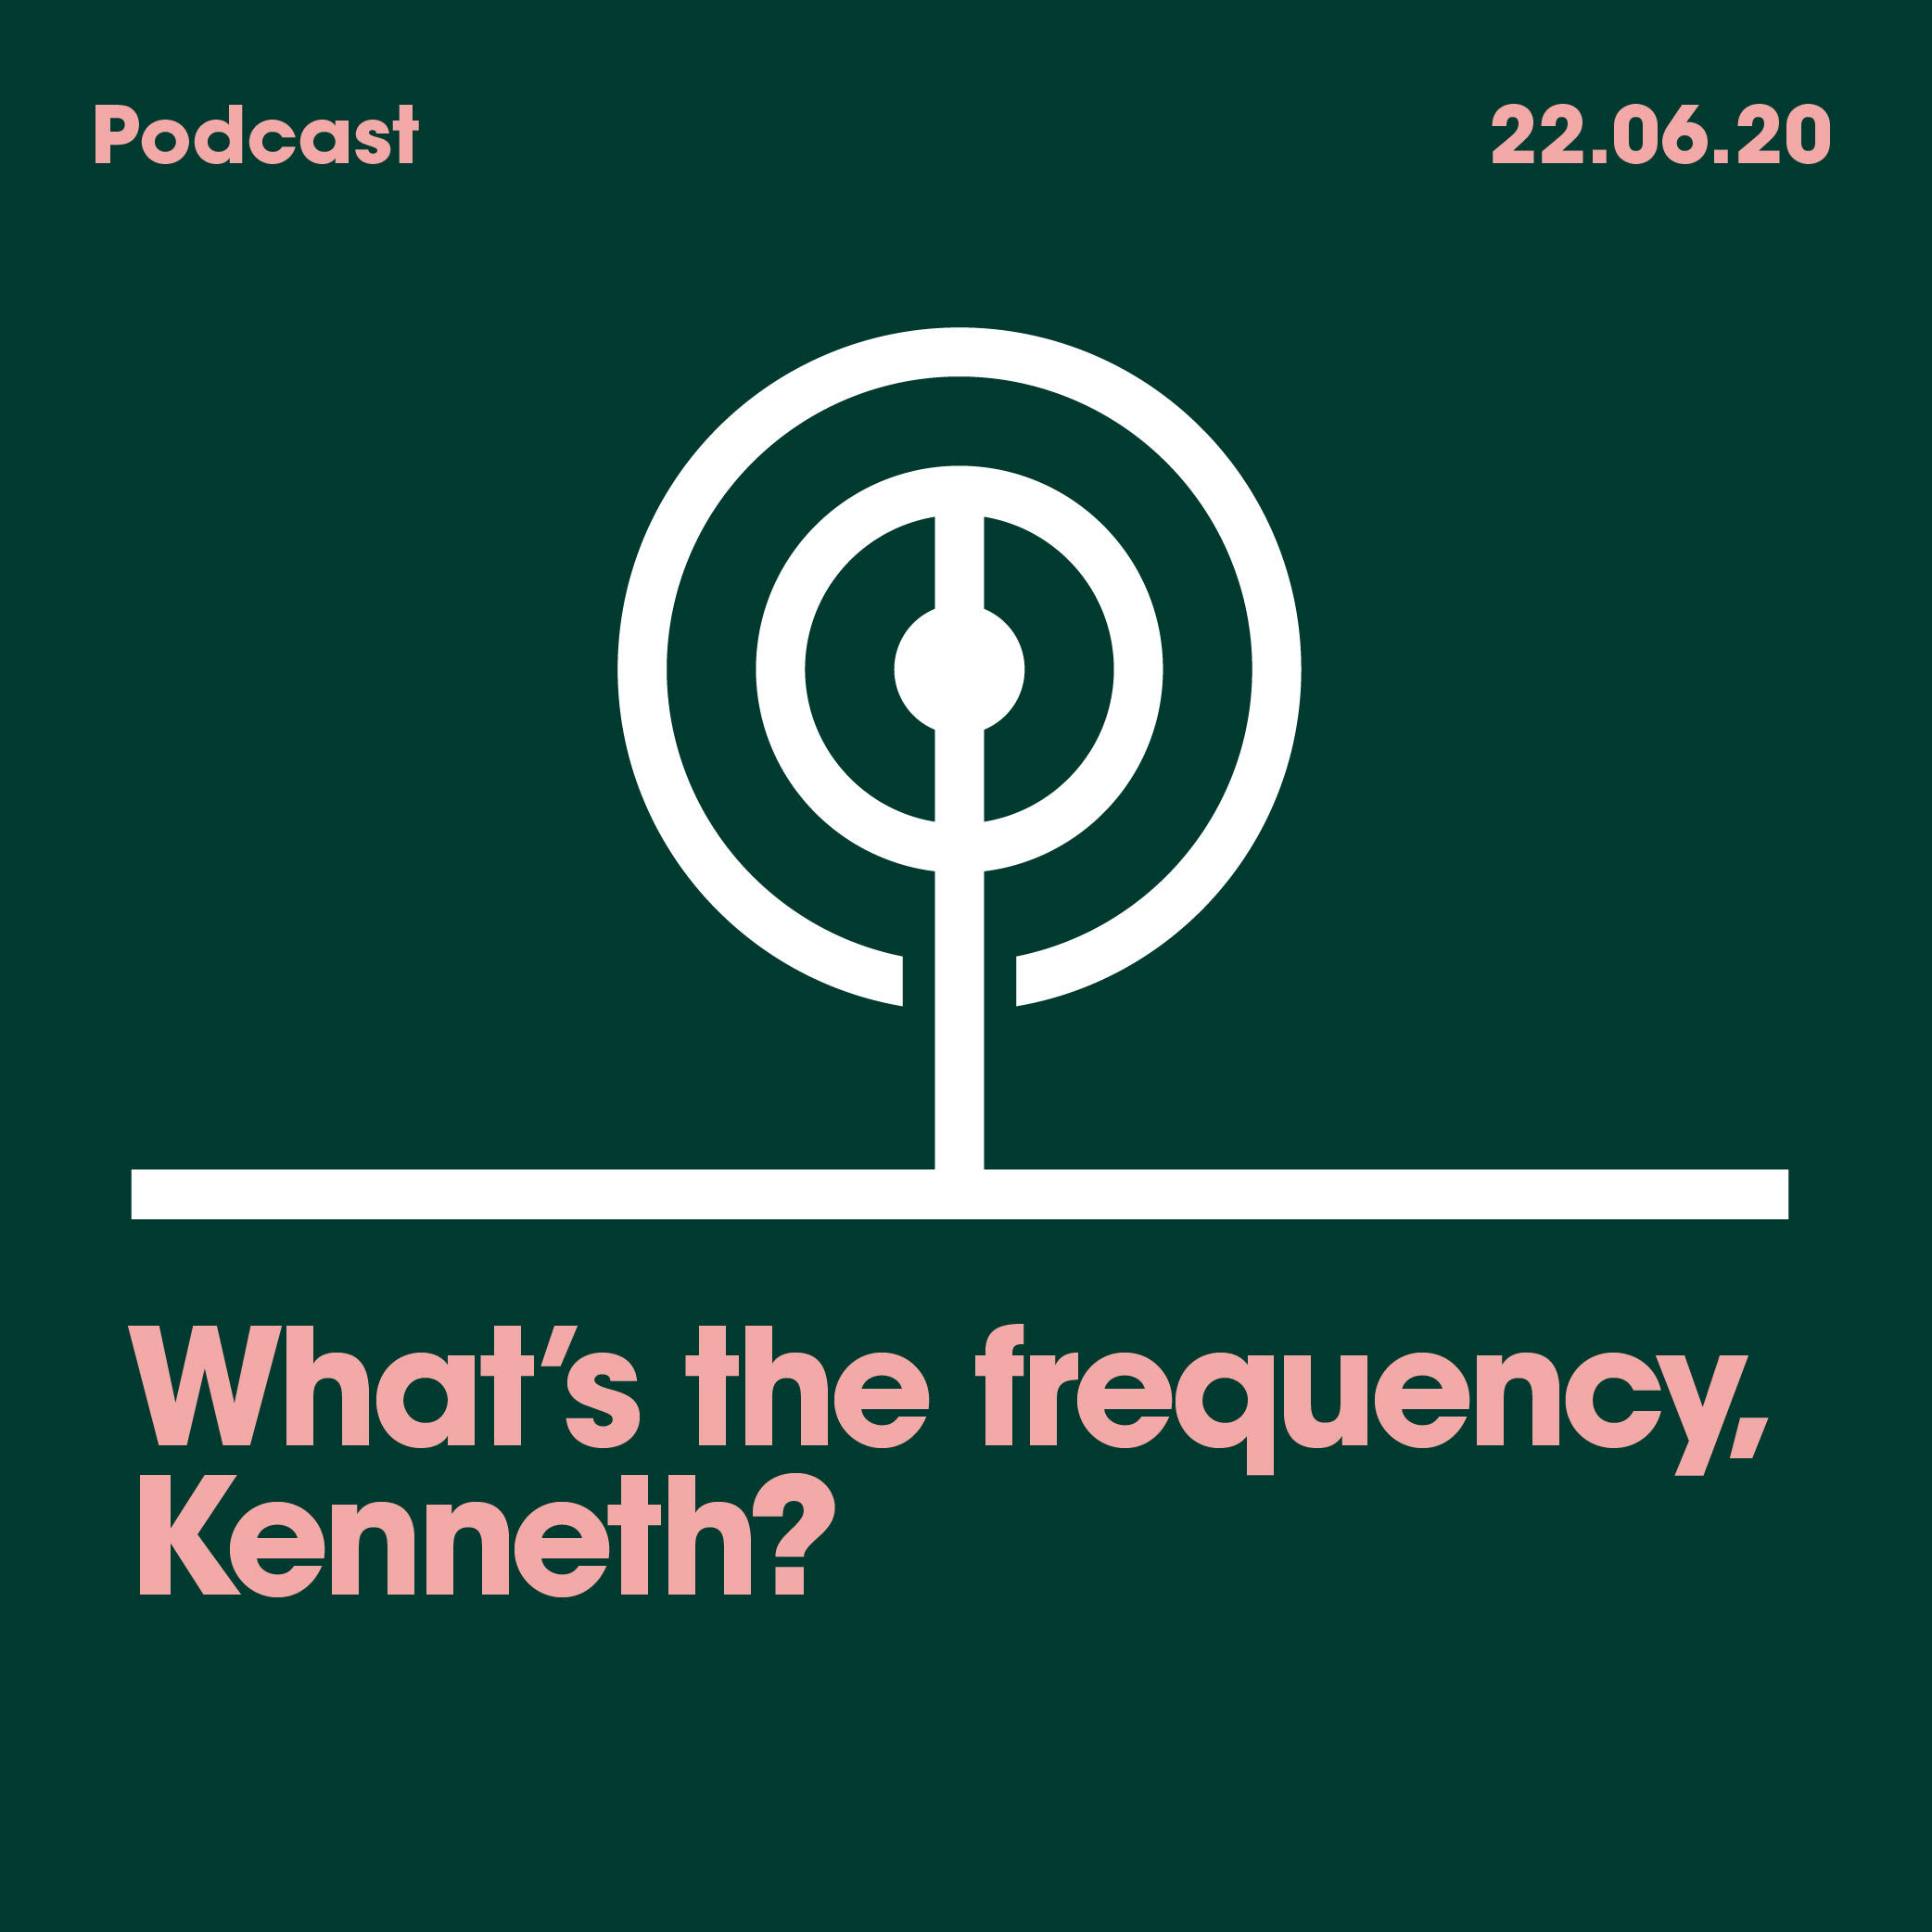 22.06.20. Whats the frequency, Kenneth?